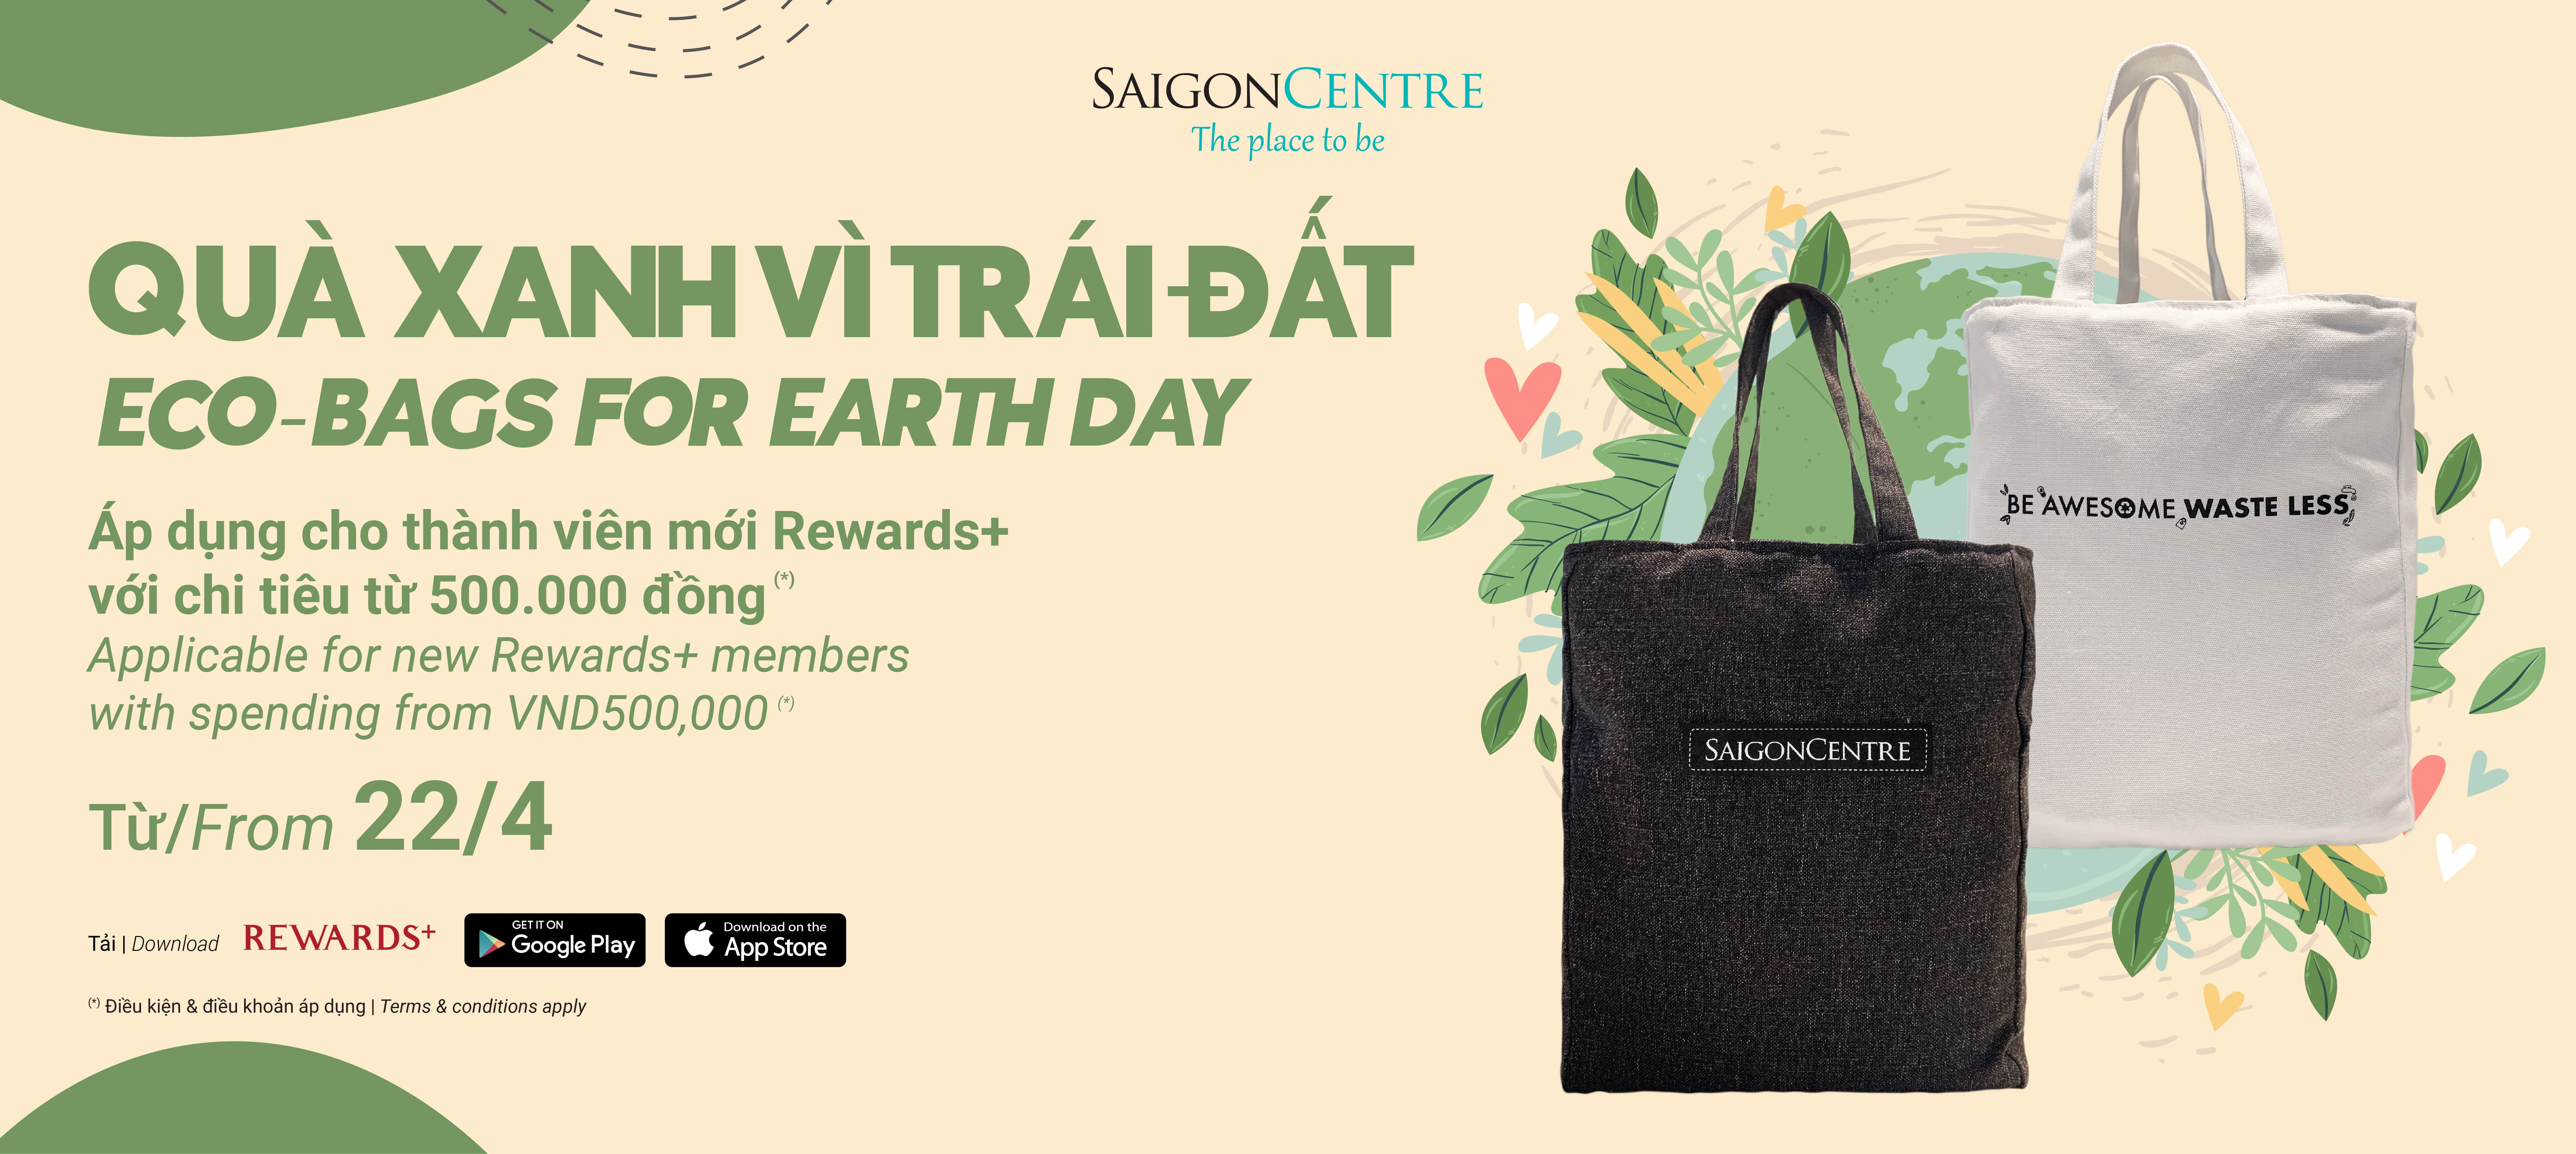 ECO-BAGS FOR EARTH DAY